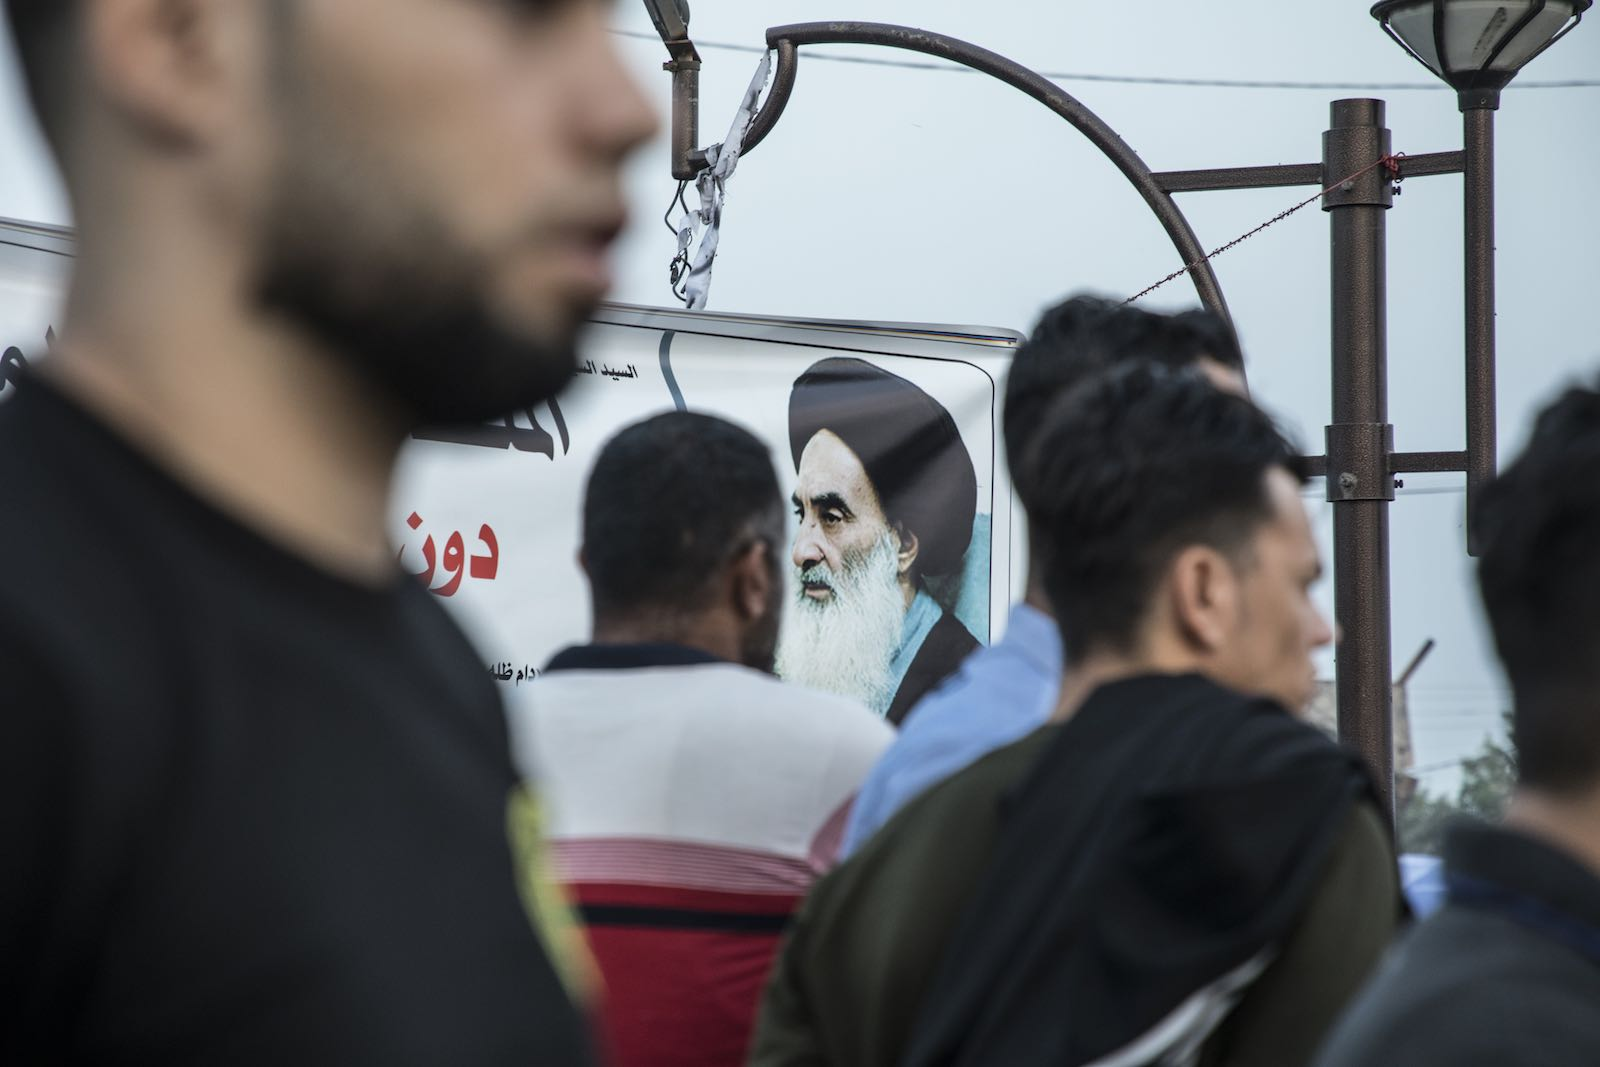 Protestors in front of the governorate in Basra, Iraq, and a billboard of Shia leader Ali Al-Sistani, 16 November (Photo: Laurent Van der Stockt/Le Monde/Getty Images)